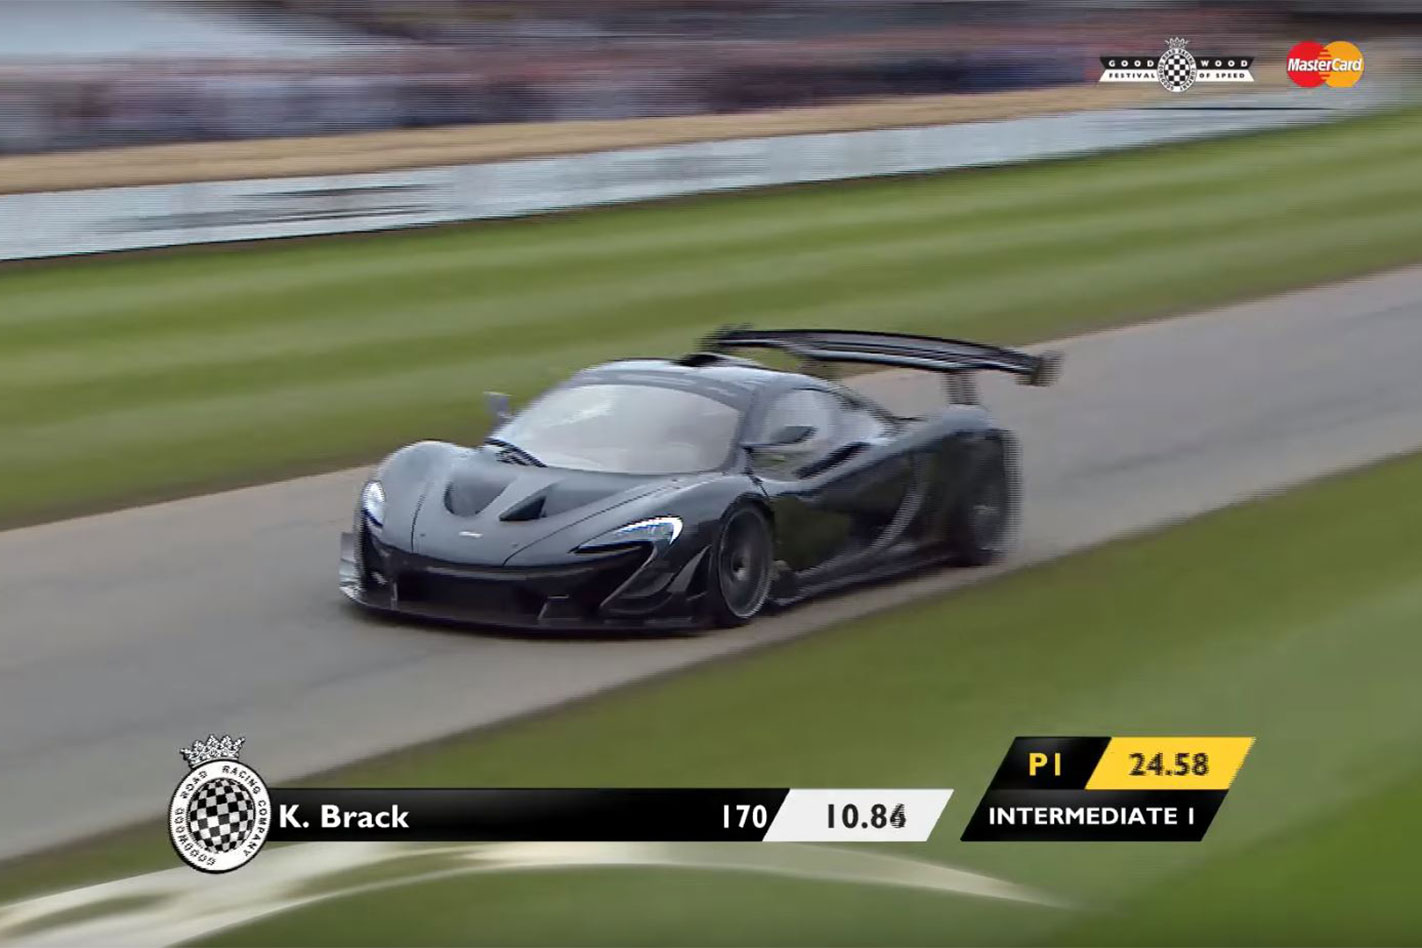 McLaren P1 LM Goodwood record main